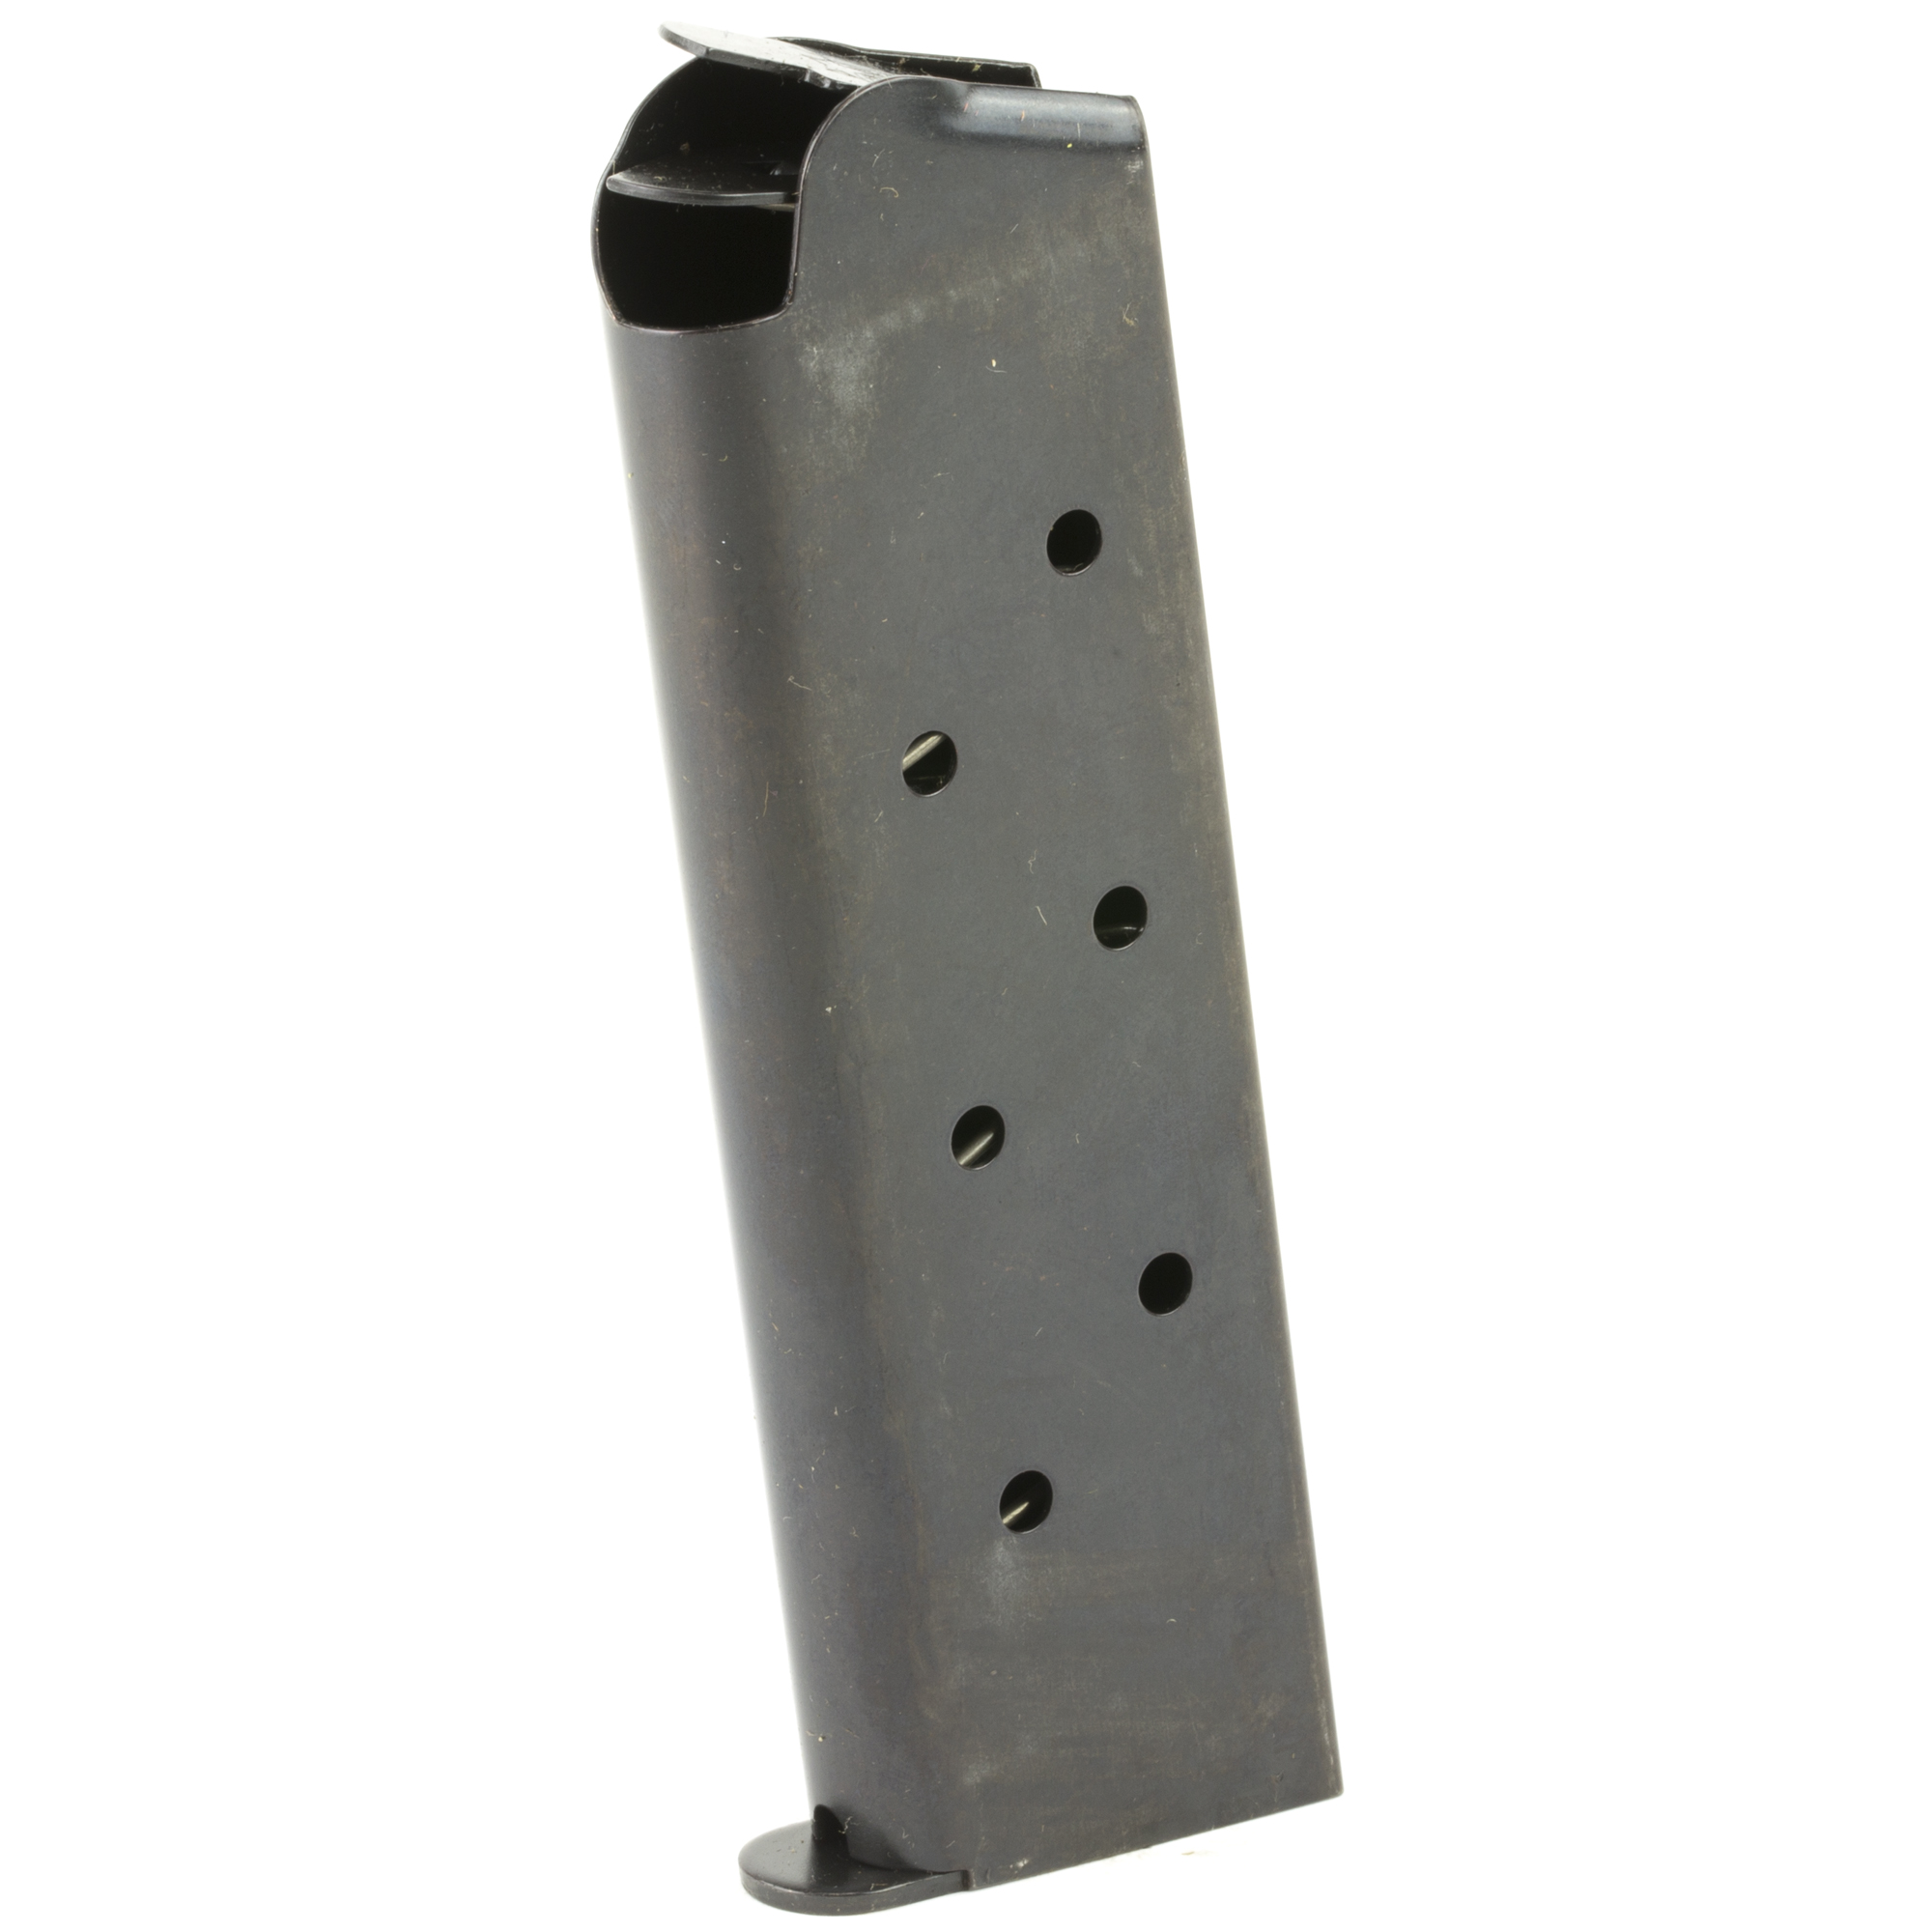 This is a Full-Size 1911 magazine in the traditional flush fit GI-style with all new materials and a follower designed for enhanced capacity (8 Rounds). It features a laser welded stainless steel magazine tube with welded base plate and is drilled for an optional polymer base pad (Sold Separately).